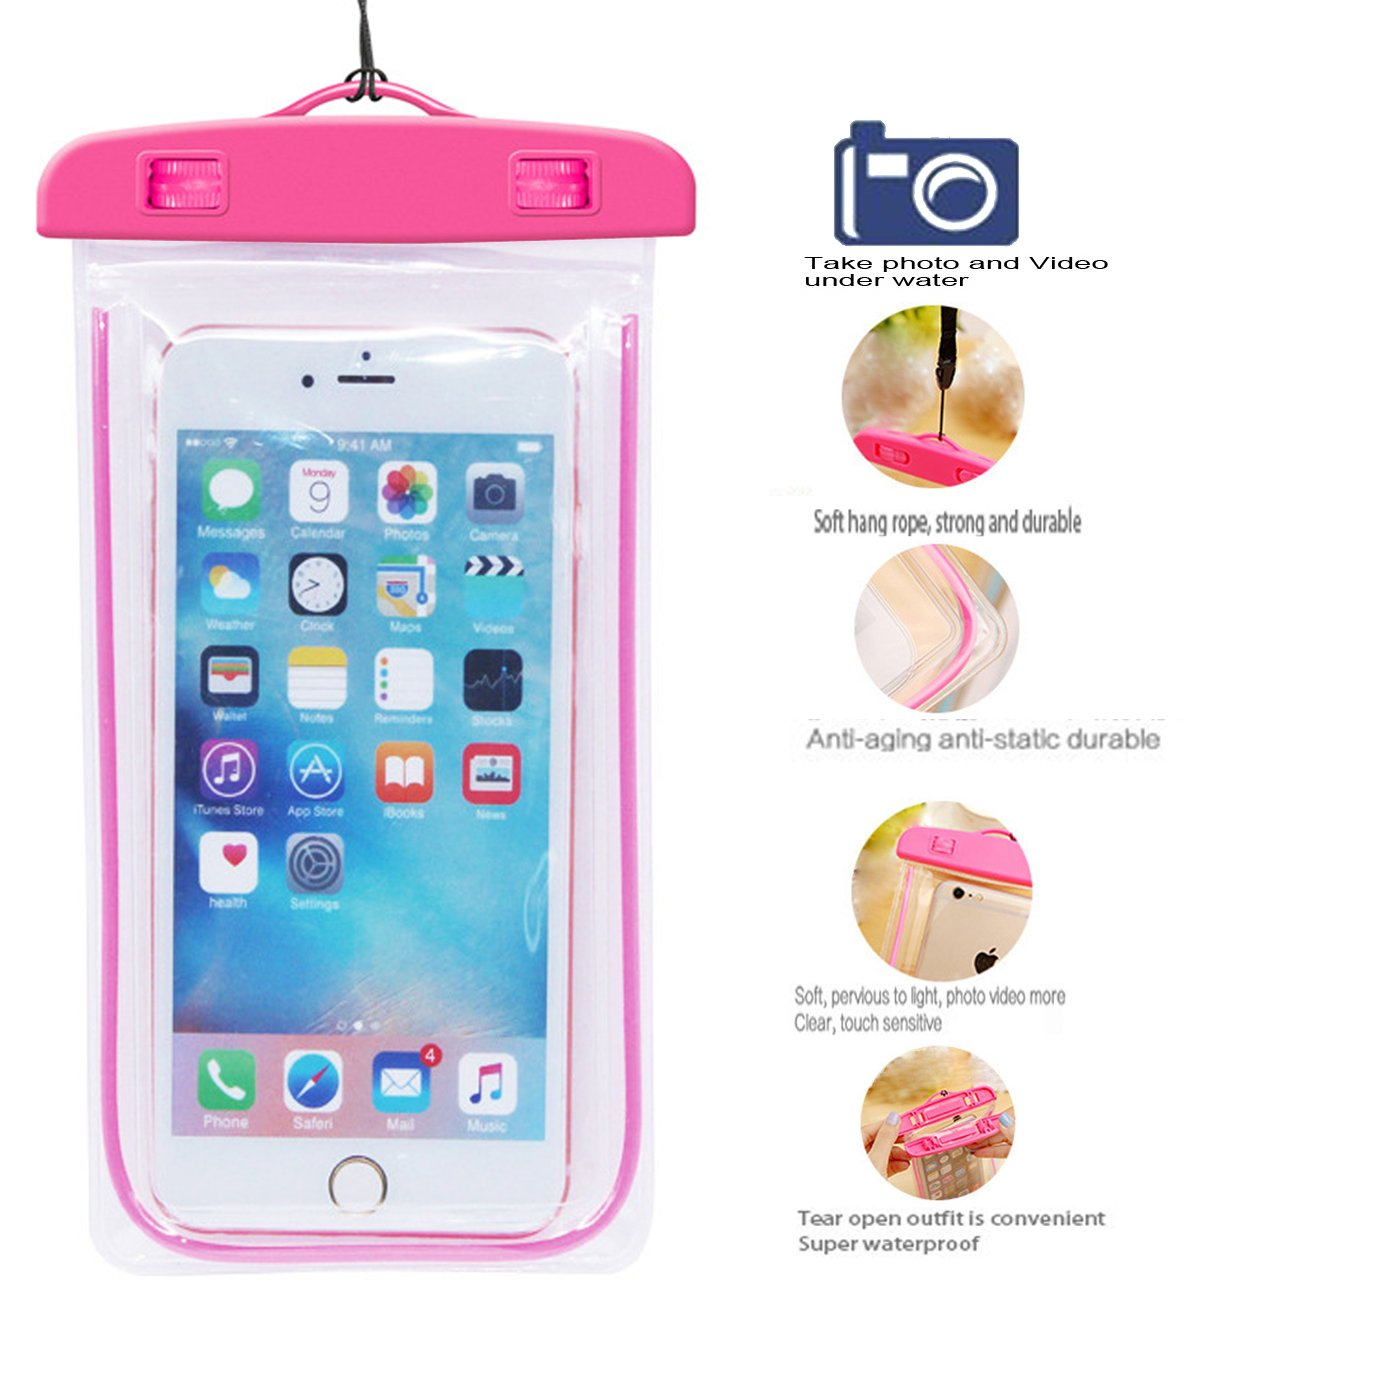 [2Pack Blue+2Pack pink] Universal Waterproof Phone Case Dry Bag CaseHQ for iPhone 7,7 plus,8,8 plus,6/6s/6plus/6splus Samsung Galaxy s5/s6,s7,s8 plus etc. Waterproof for Cell Phone up to 5.8 inches by CaseHQ (Image #2)